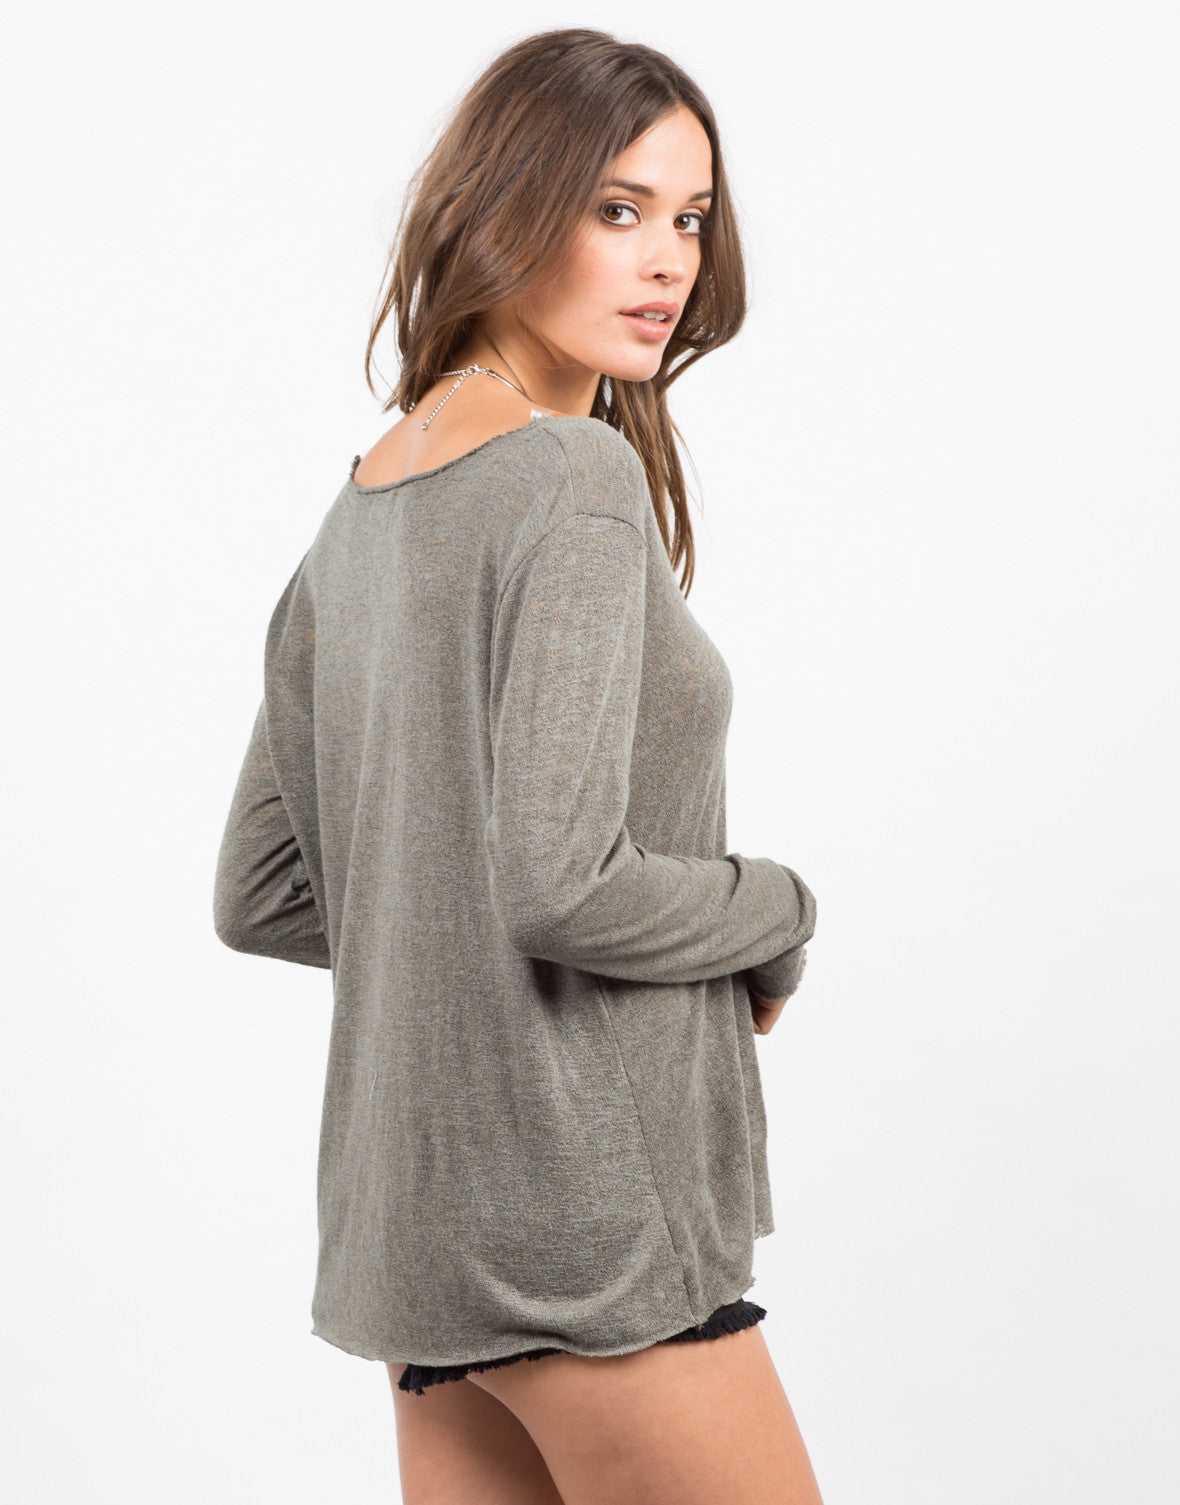 Back View of Basic Long Sleeve Top